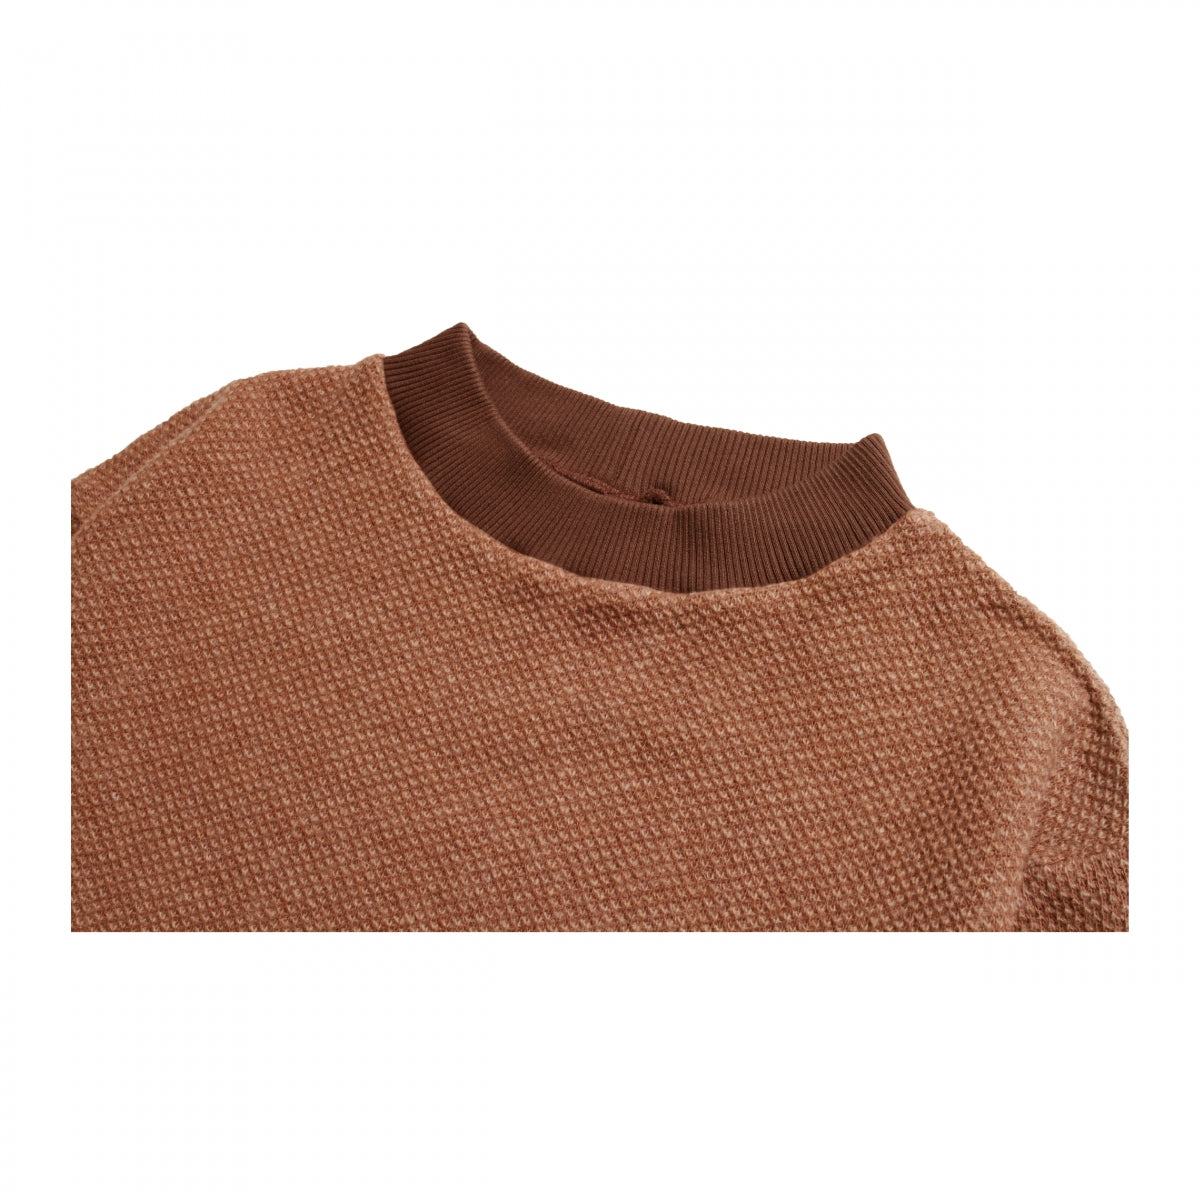 Axel_Tuck Double Face Moc-Neck Sweat Shirt